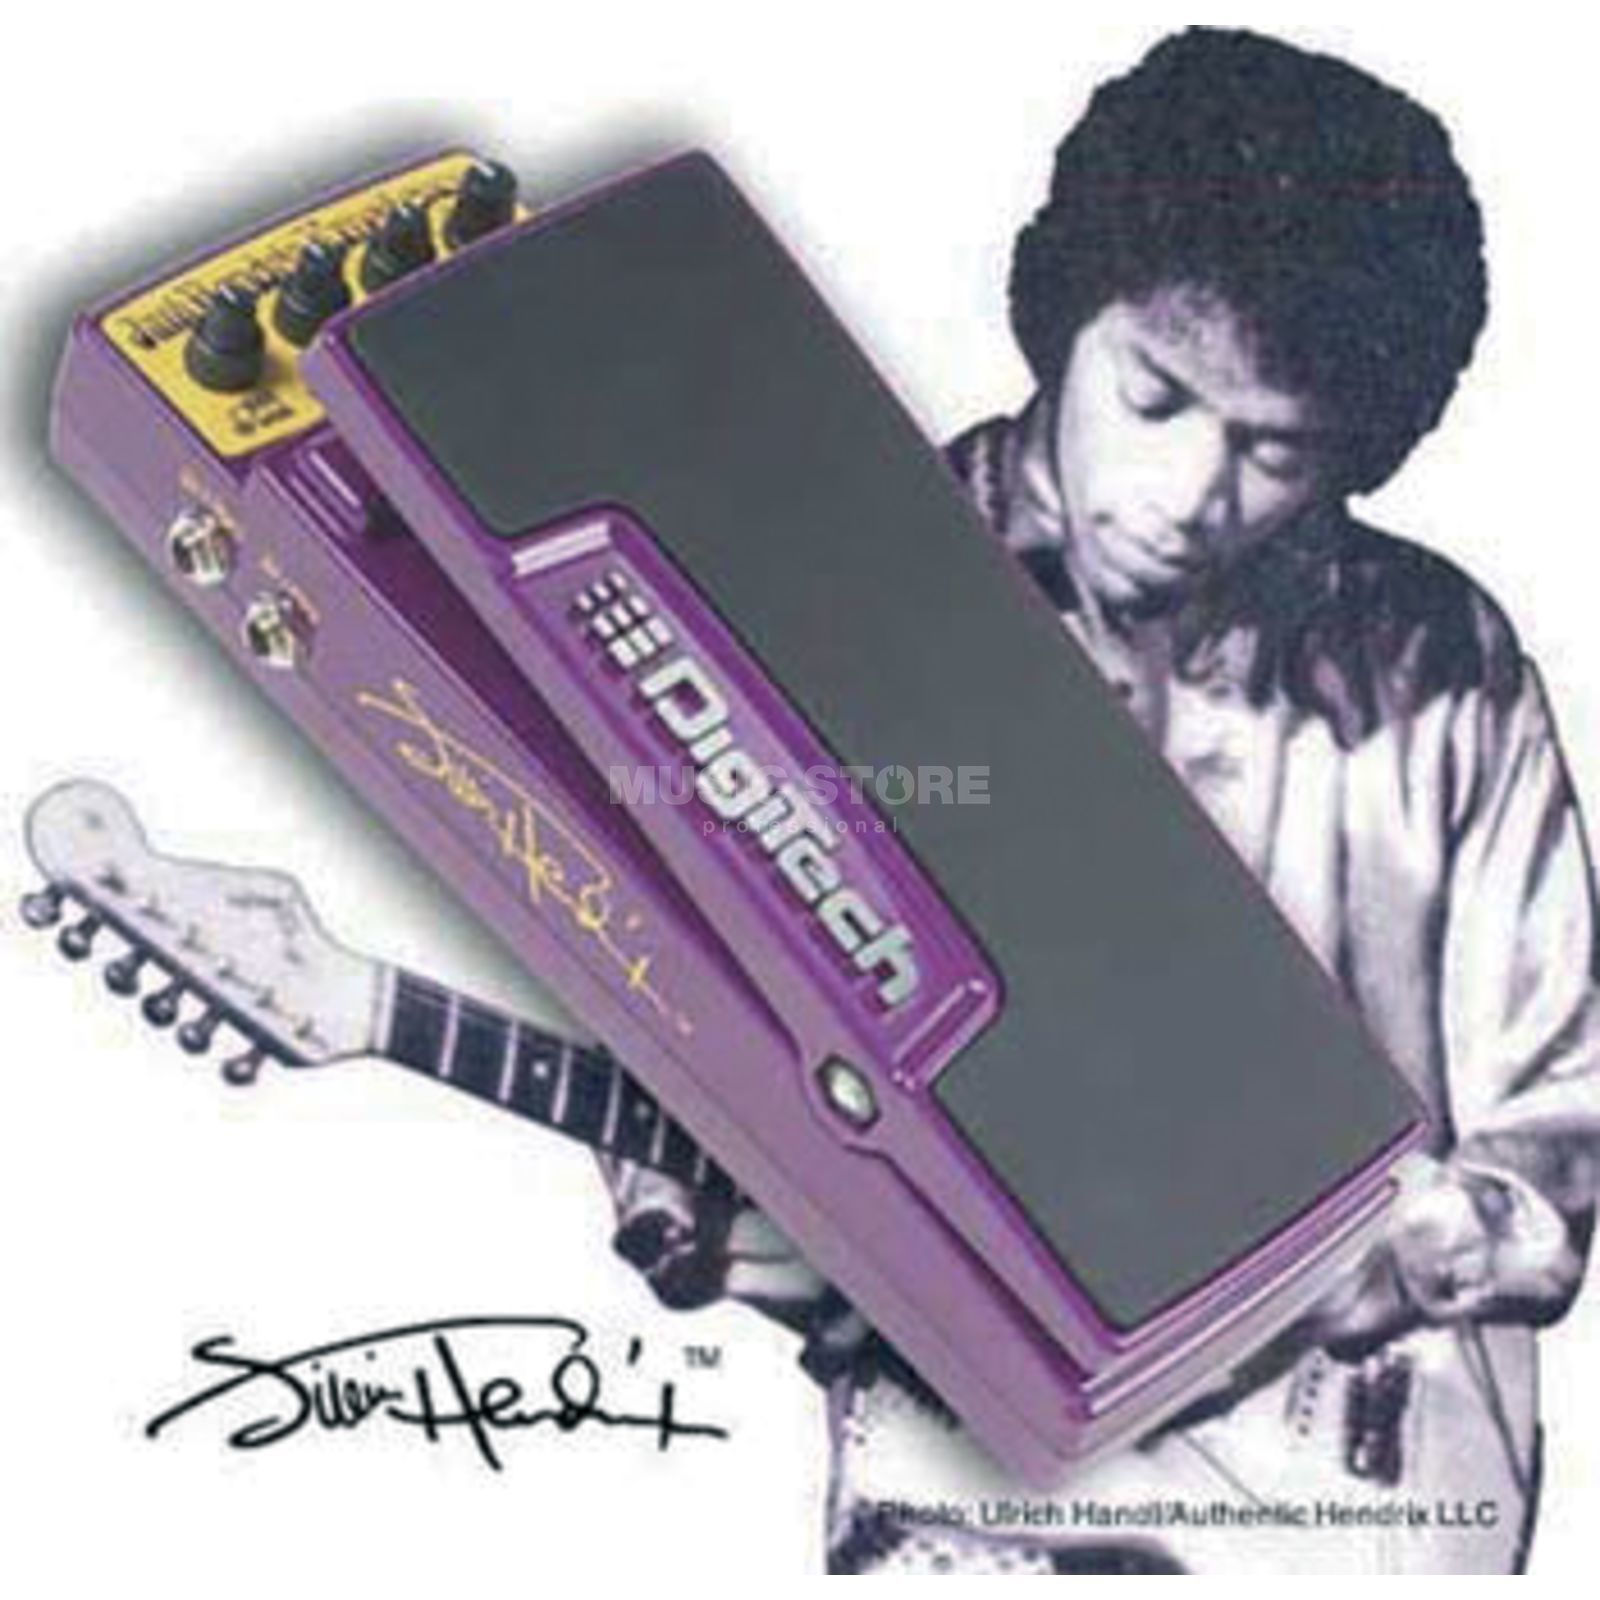 DigiTech Jimi Hendrix Experience Pedal  incl. Power Supply, Bag Produktbillede